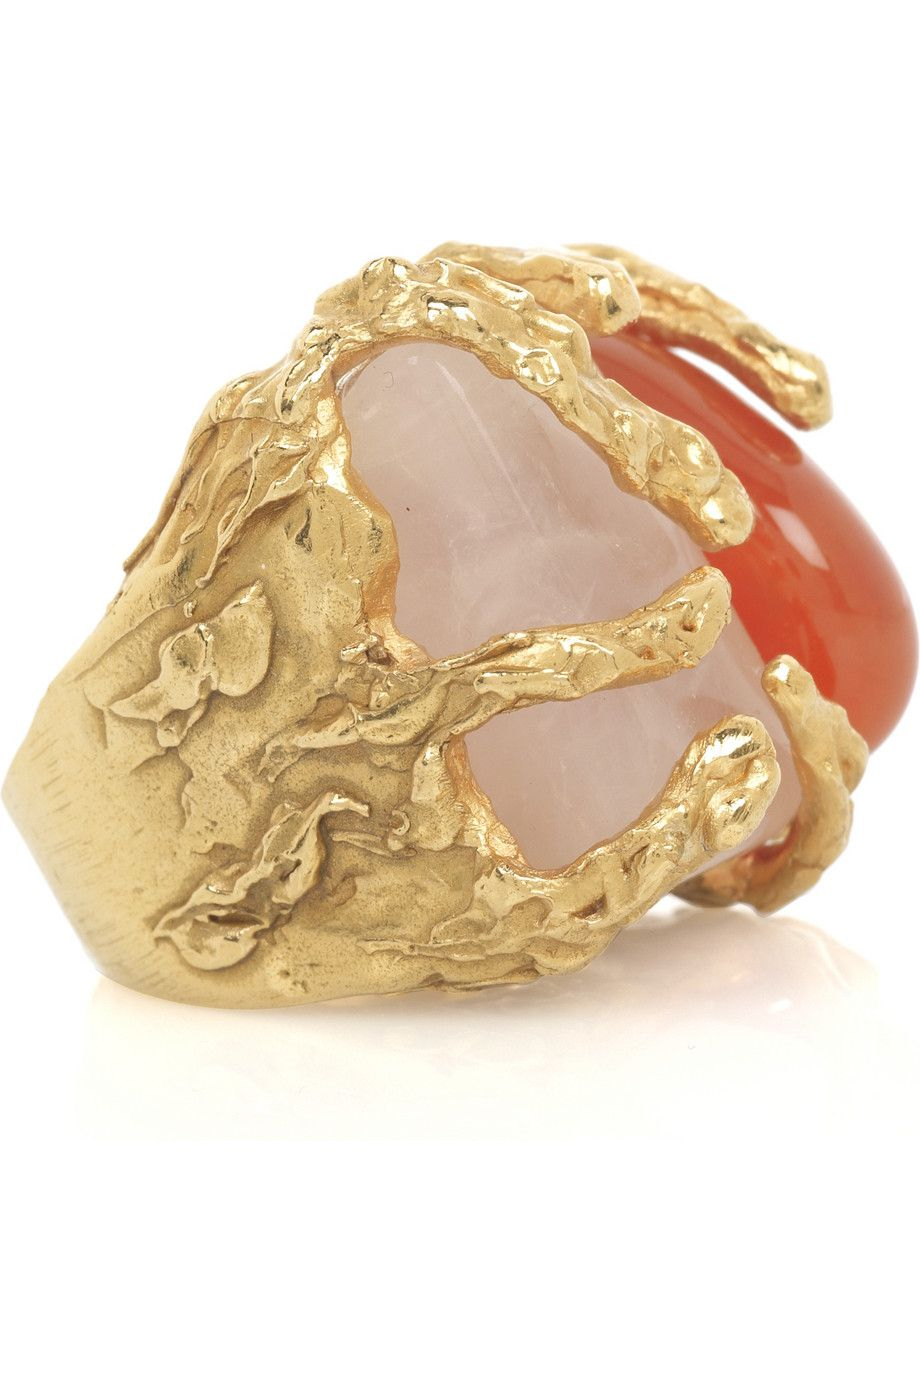 Goldtone metal ring with coraline stones, Yves Saint